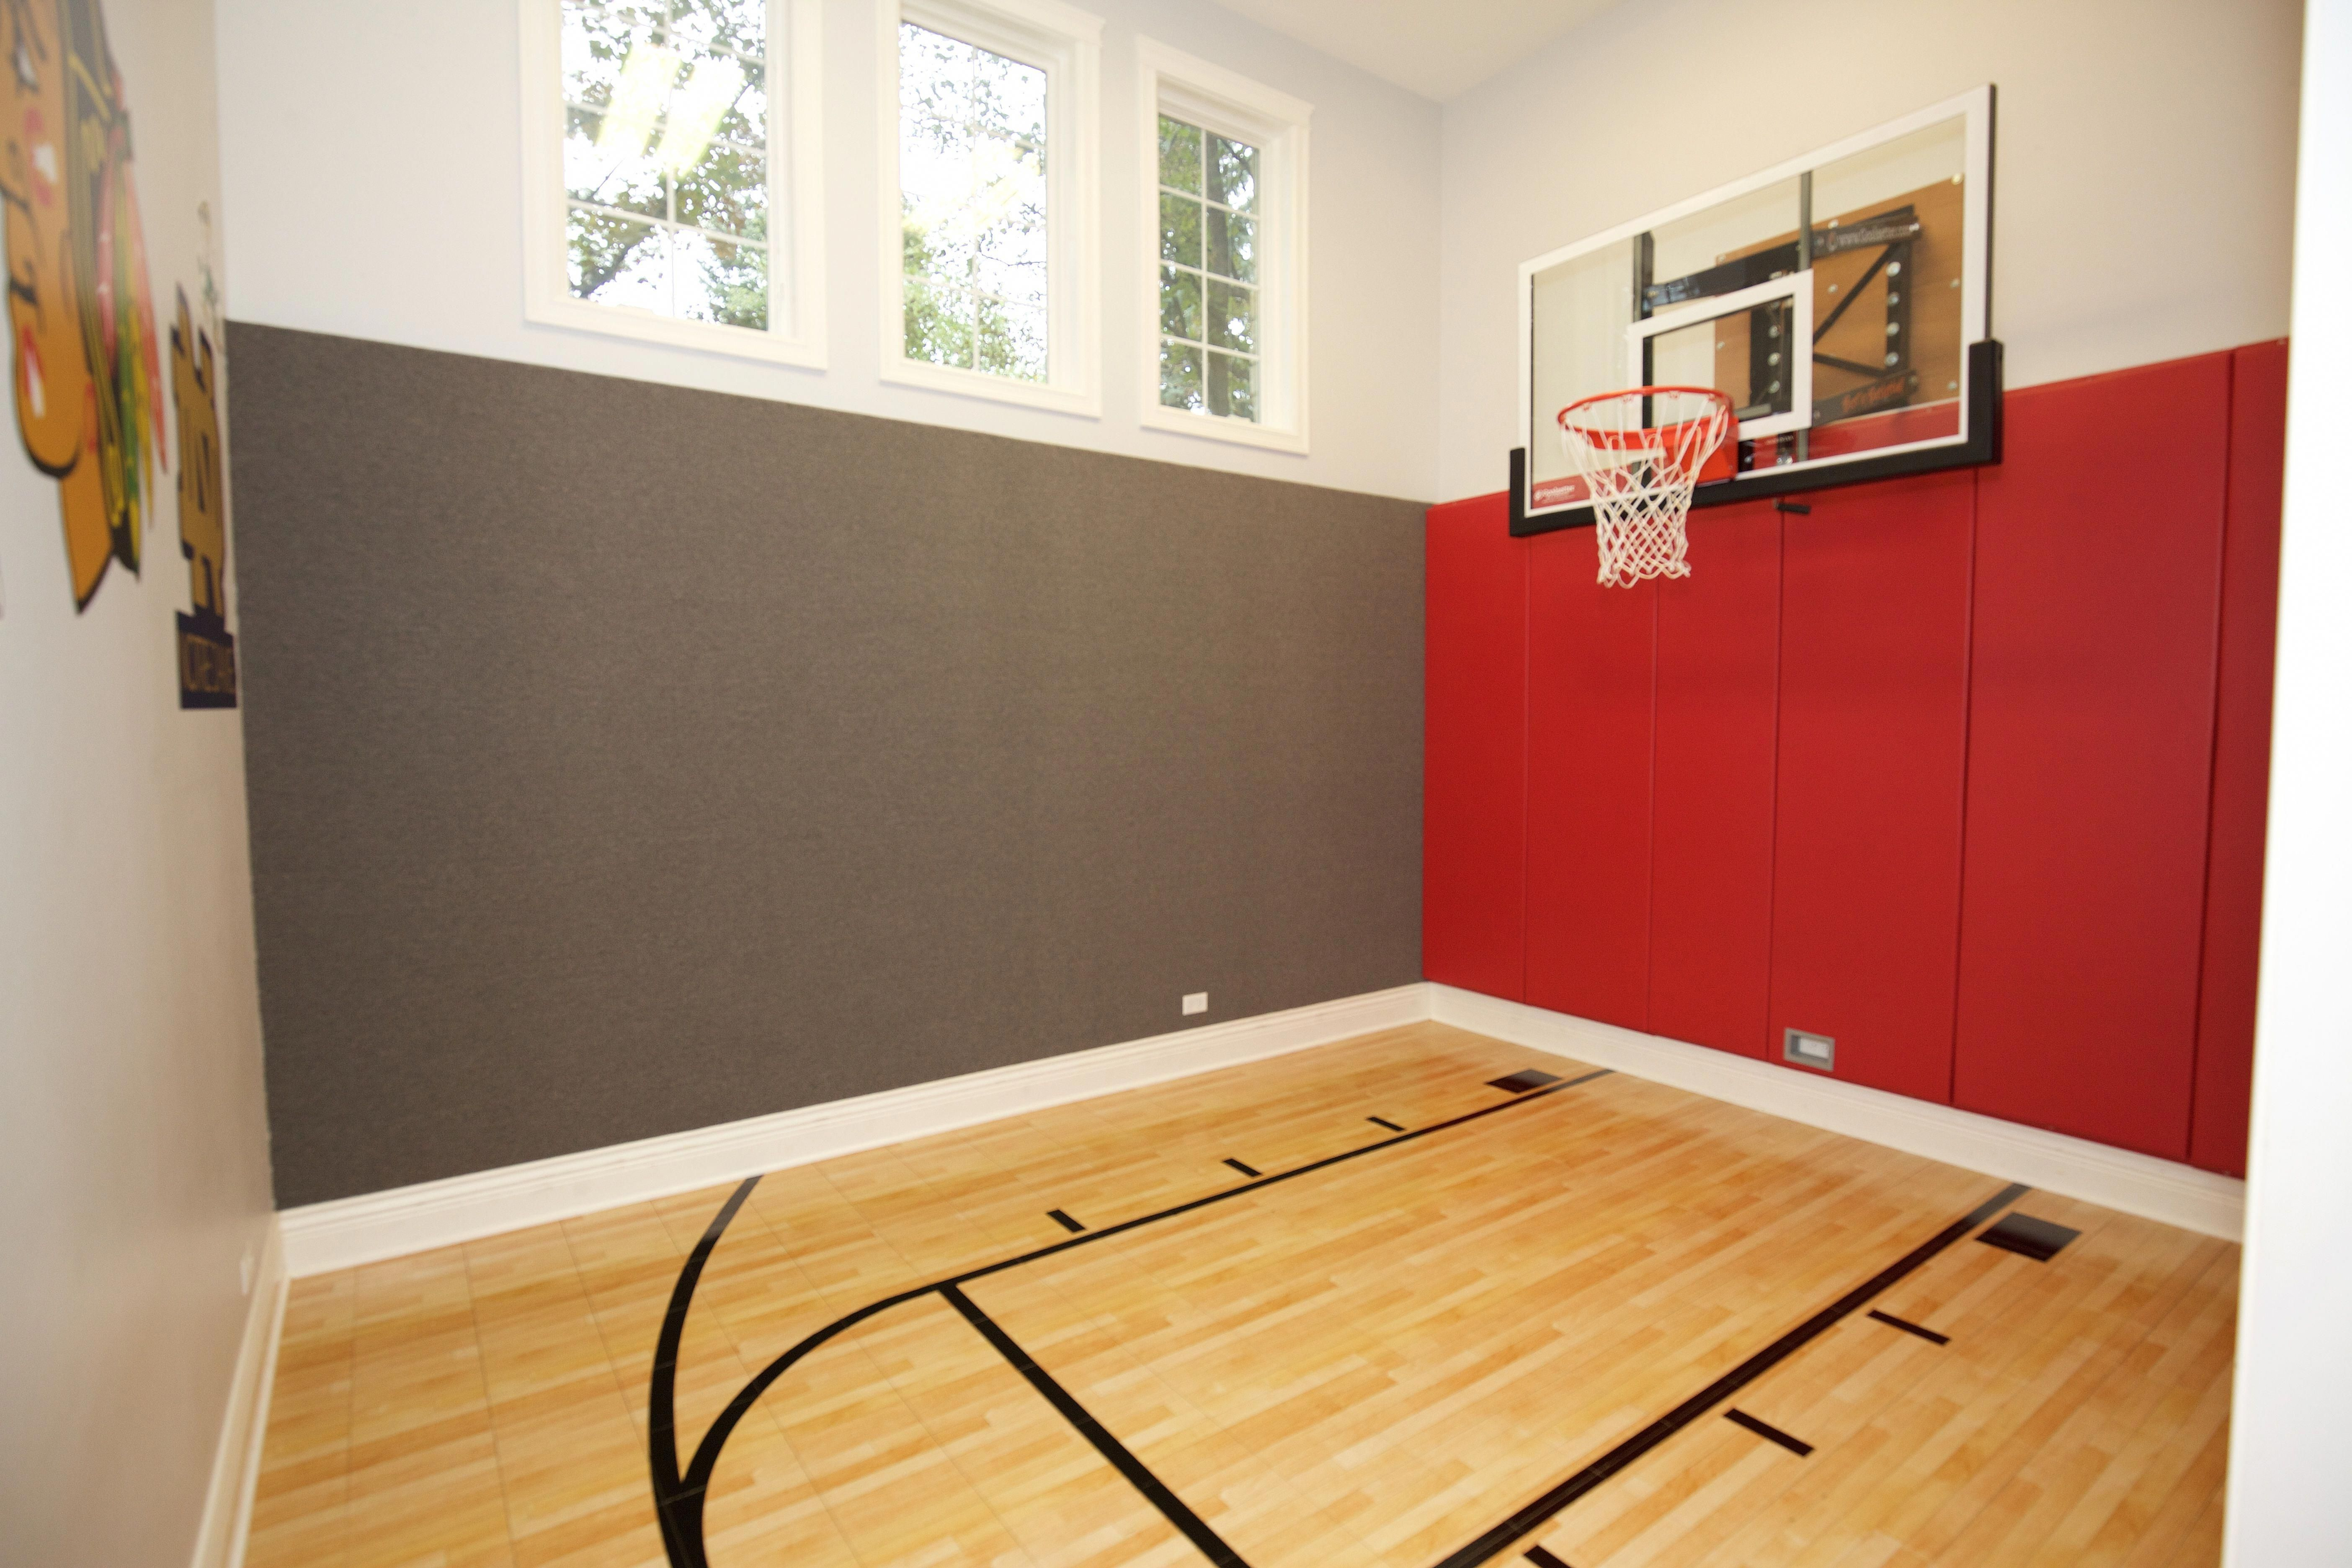 All The Kids Will Want To Come Hang Out At Your House With This Basketball Court In Your Basement Basketball Room Home Basketball Court Indoor Basketball Court